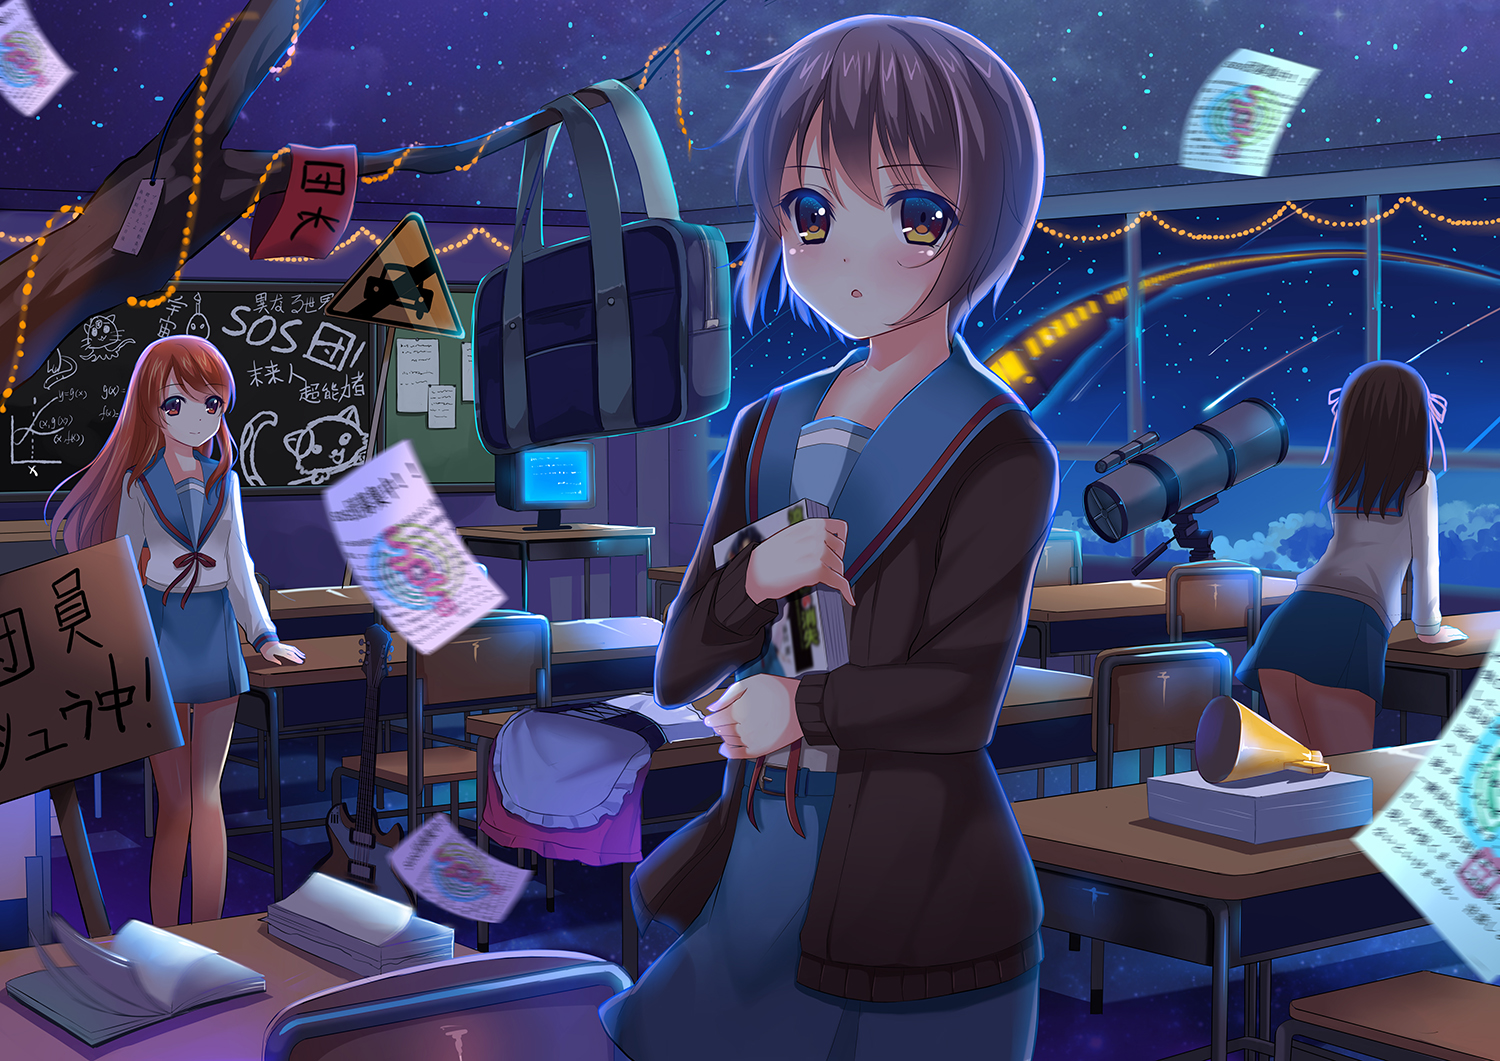 asahina_mikuru book brown_eyes brown_hair guitar instrument long_hair nagato_yuki nine_wangwang orange_eyes orange_hair paper purple_hair ribbons school_uniform short_hair stars suzumiya_haruhi suzumiya_haruhi_no_yuutsu train